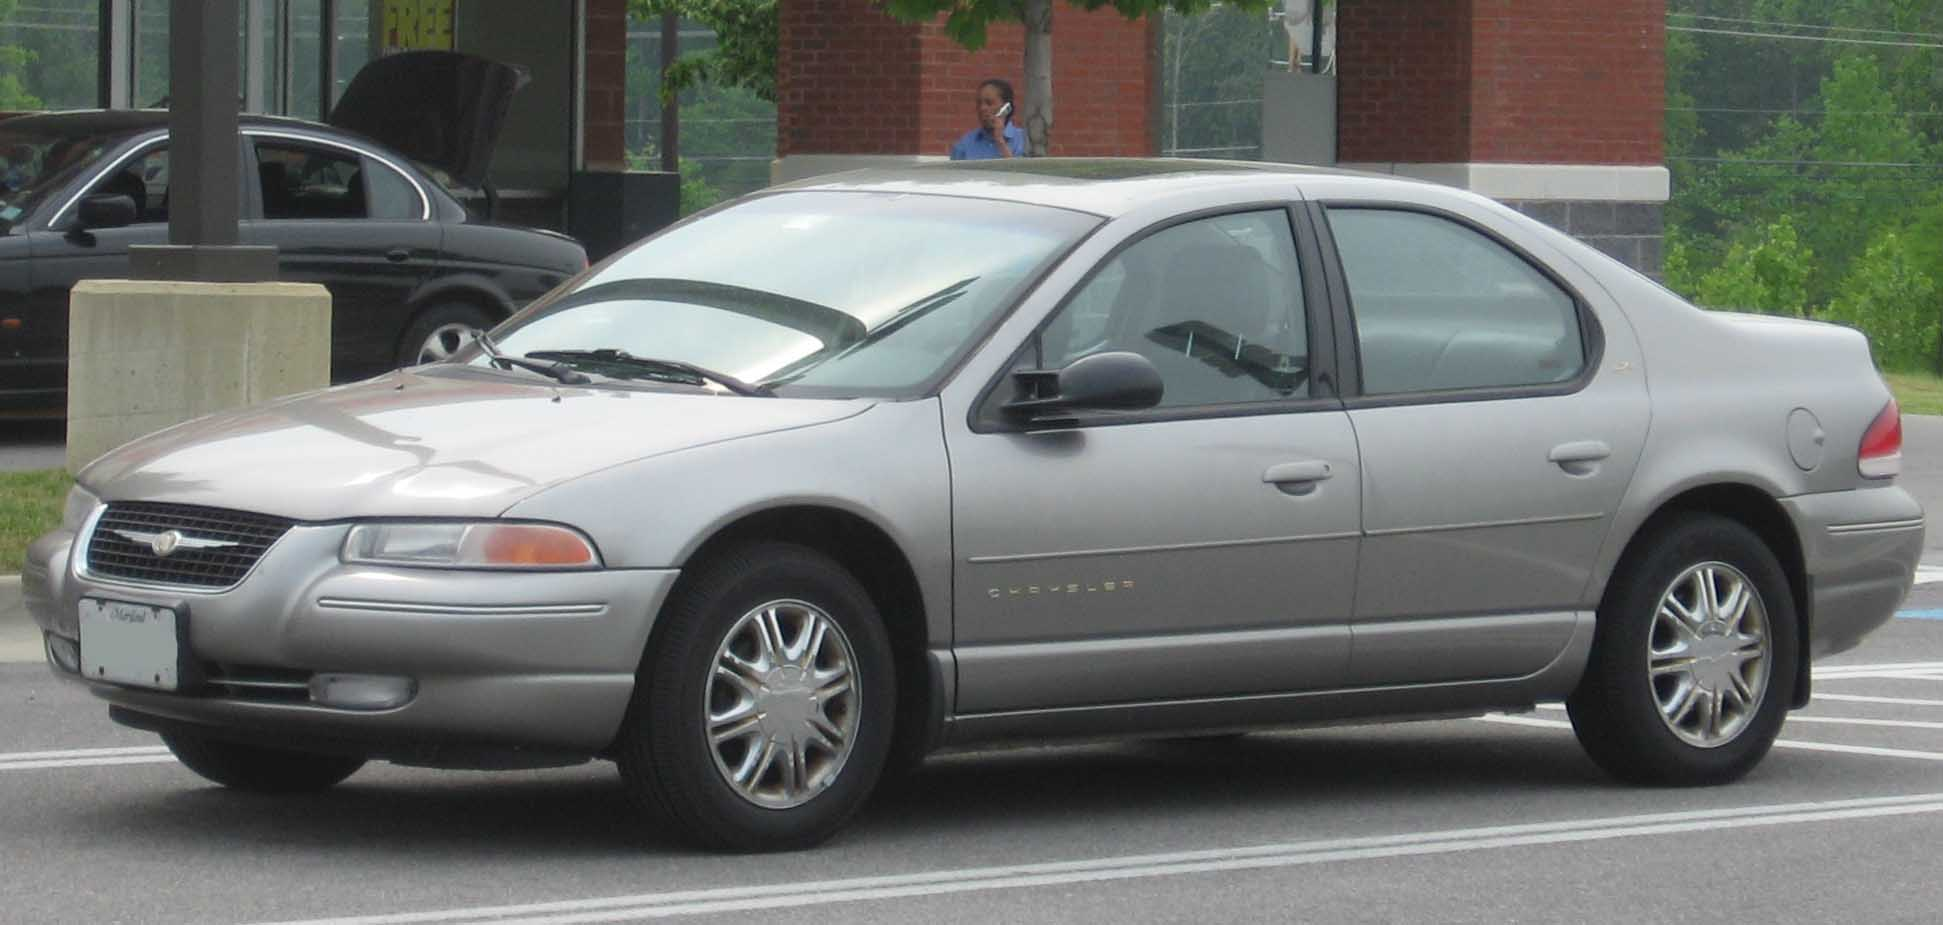 1997 Chrysler Cirrus #3